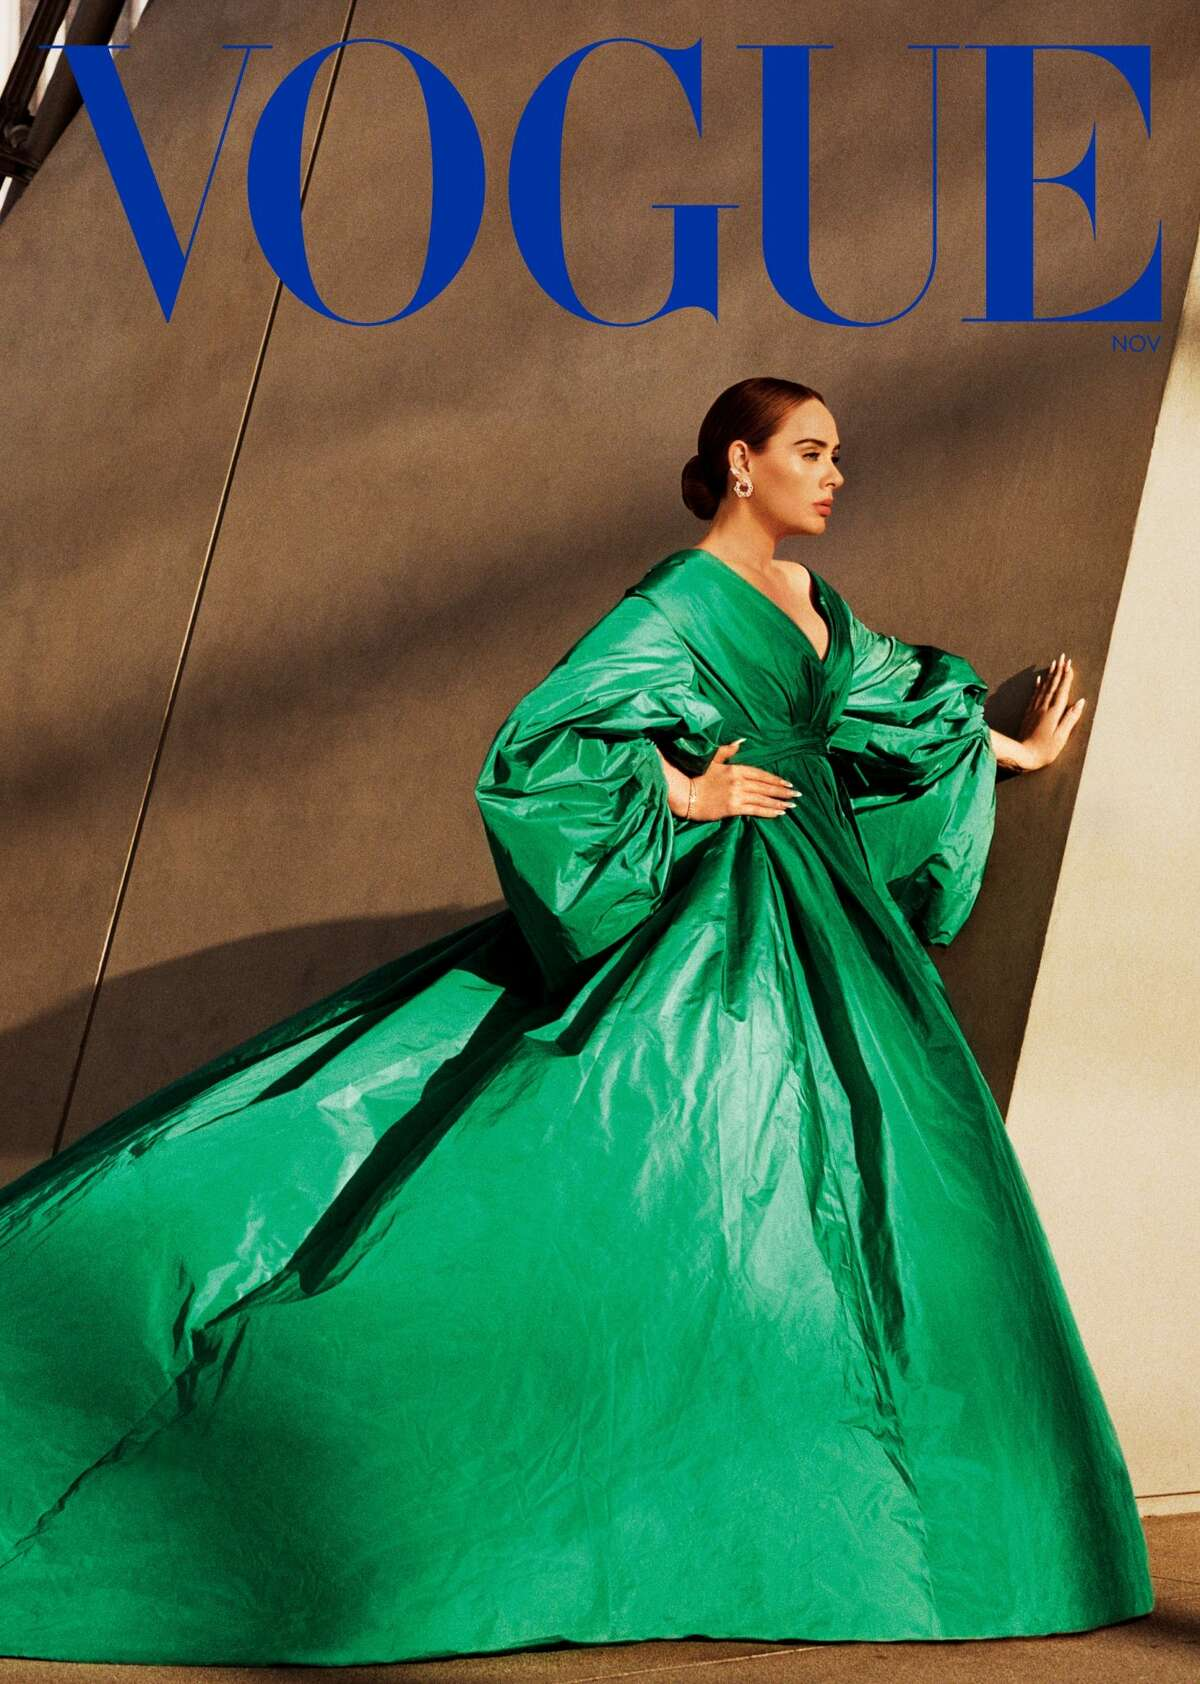 Adele appears on the cover of American Vogue's November 2021 issue.